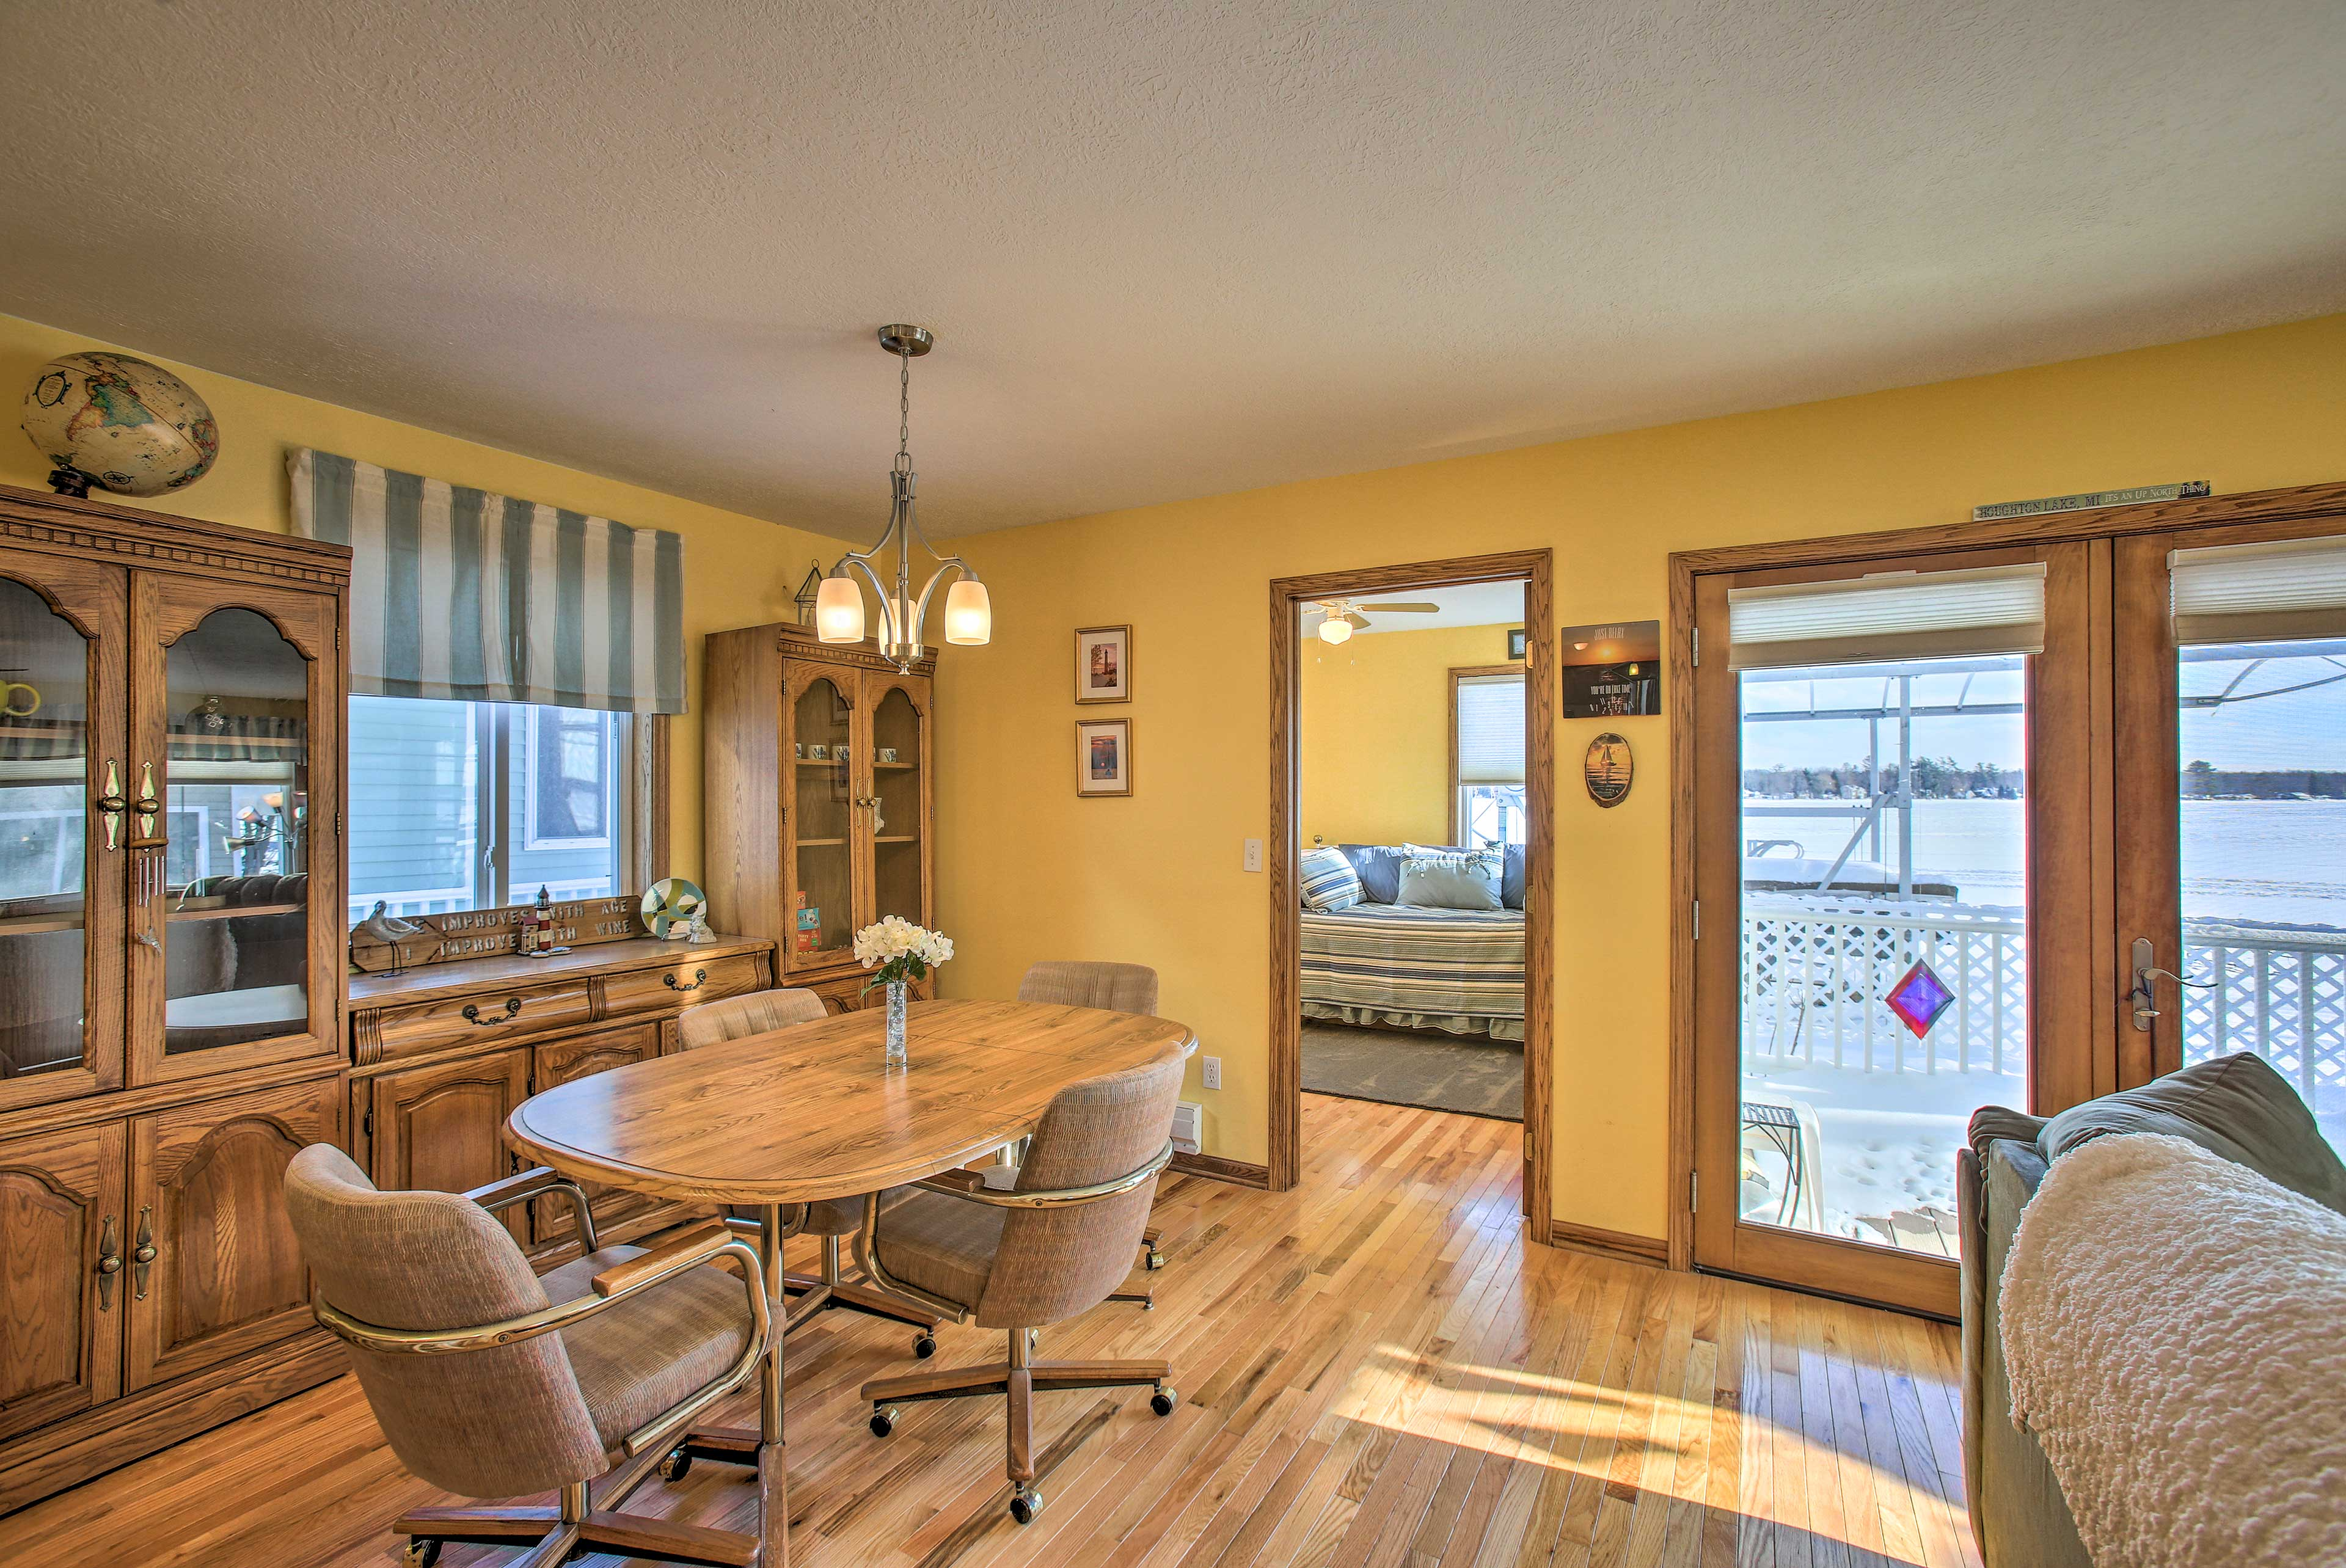 The wood floors throughout provide an open feel.